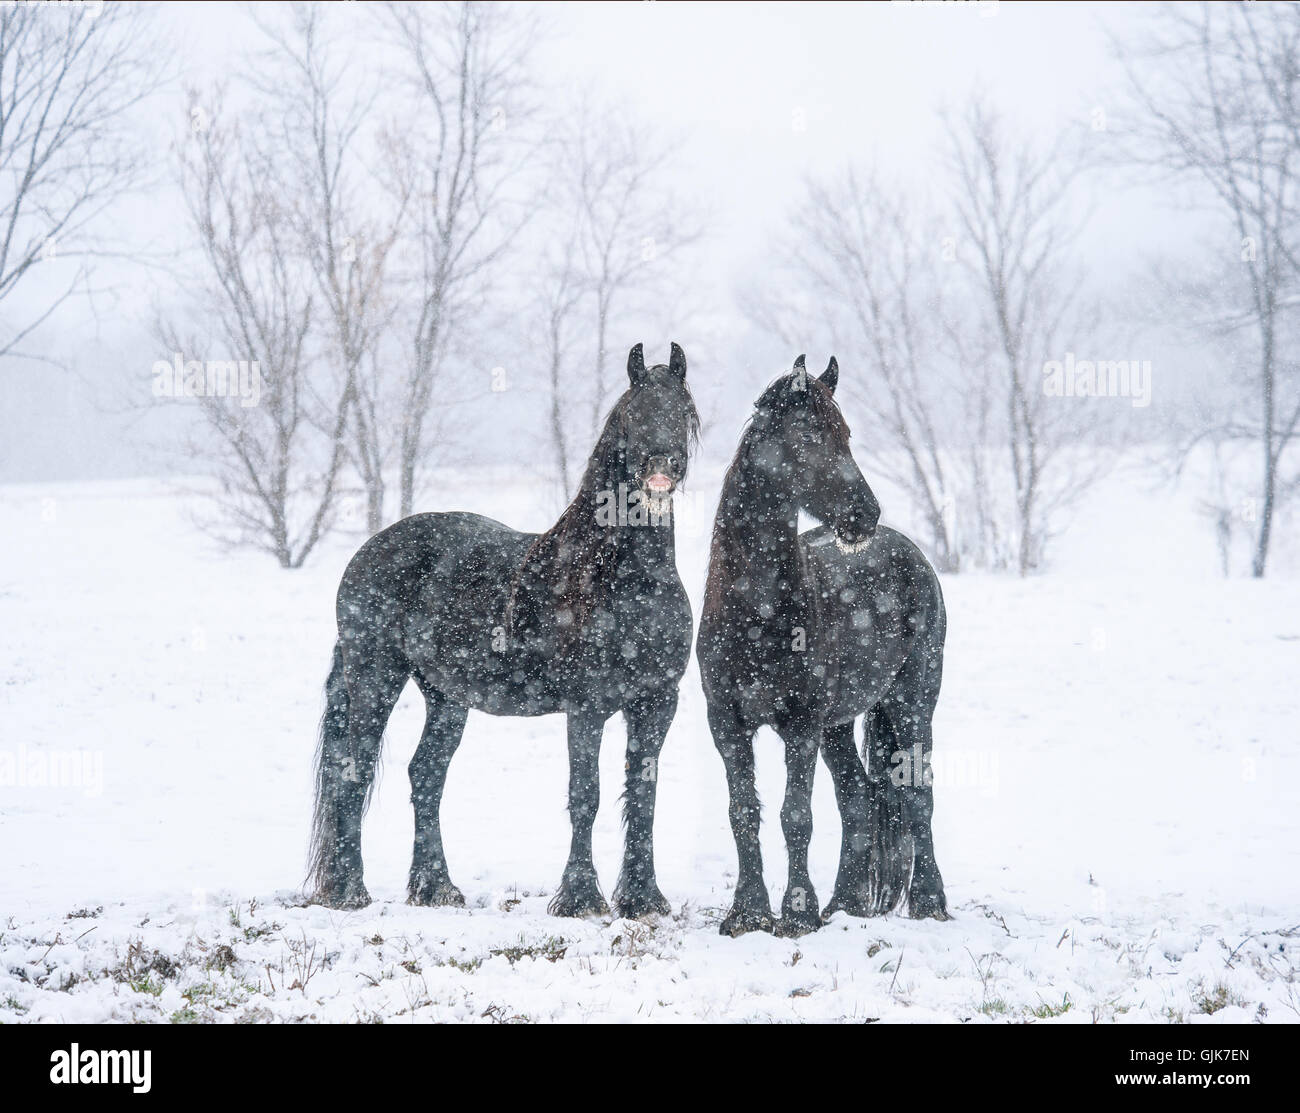 Comical face on black Friesian Horse mares in snowstorm - Stock Image